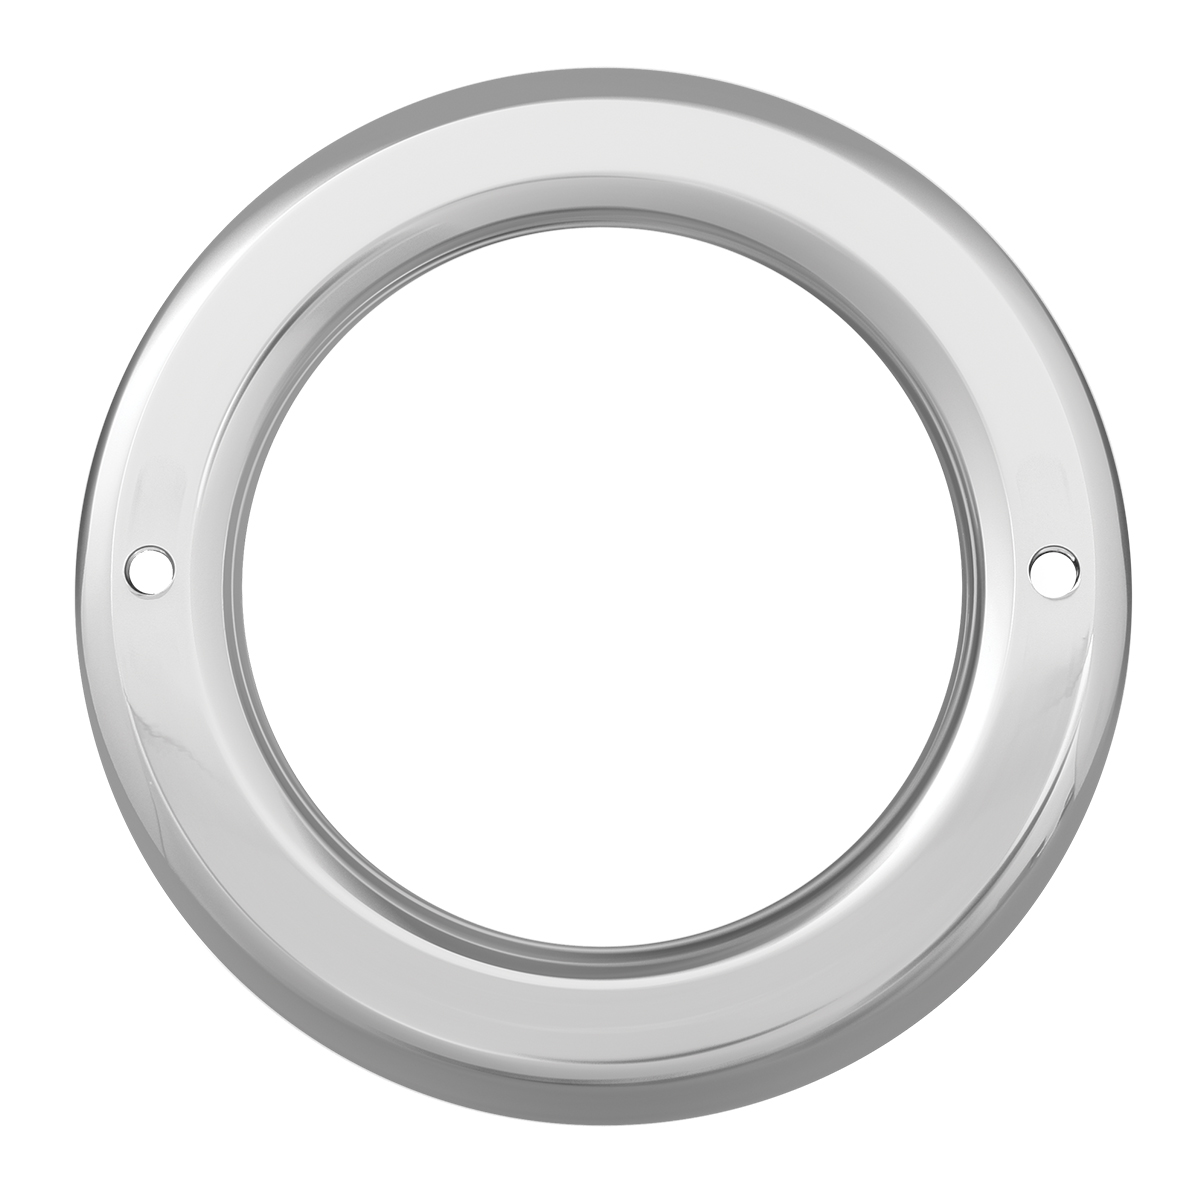 "Grommet Cover w/o Visor for 4"" Round Light"